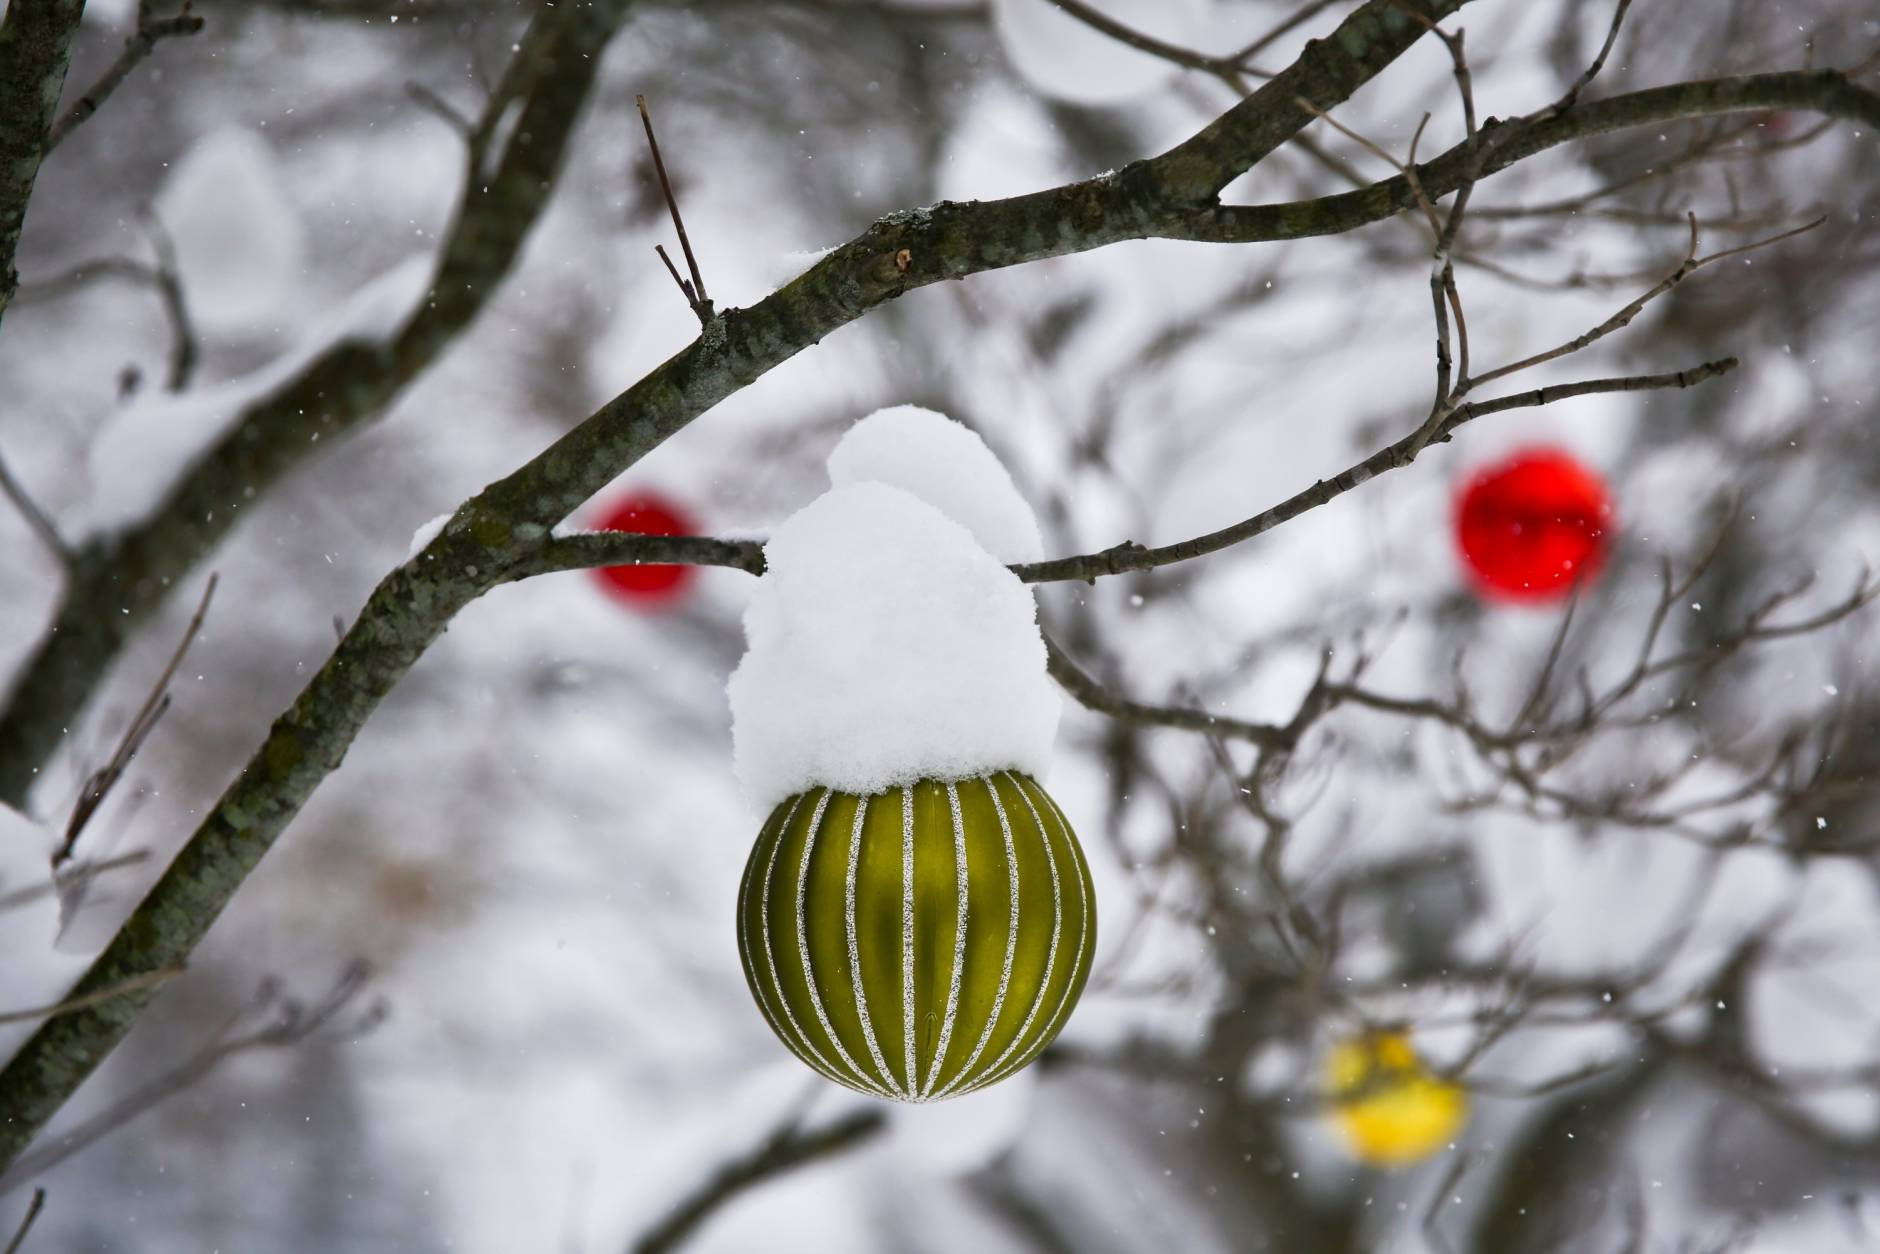 Christmas ornaments hang on a tree in Kalamazoo, Mich., on Sunday, Dec. 11, 2016. Snow from snow showers earlier in the week and Winter Storm Caly have blanketed Kalamazoo with inches of snow. (Chelsea Purgahn//Kalamazoo Gazette-MLive Media Group via AP)